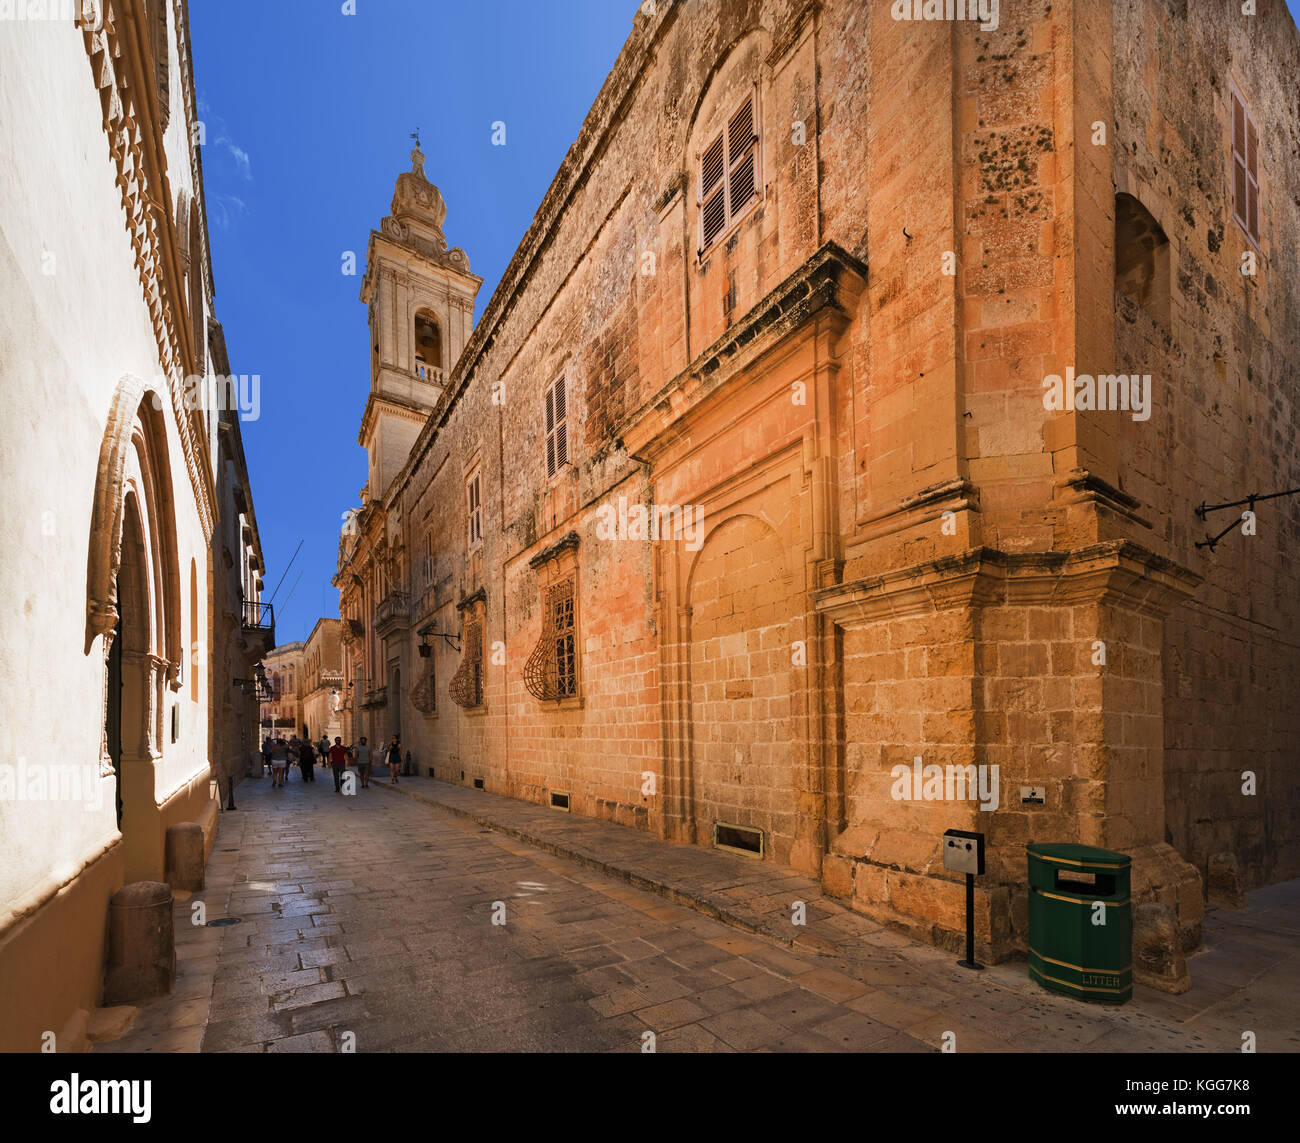 Streat in Mdina (Malta) - Stock Image